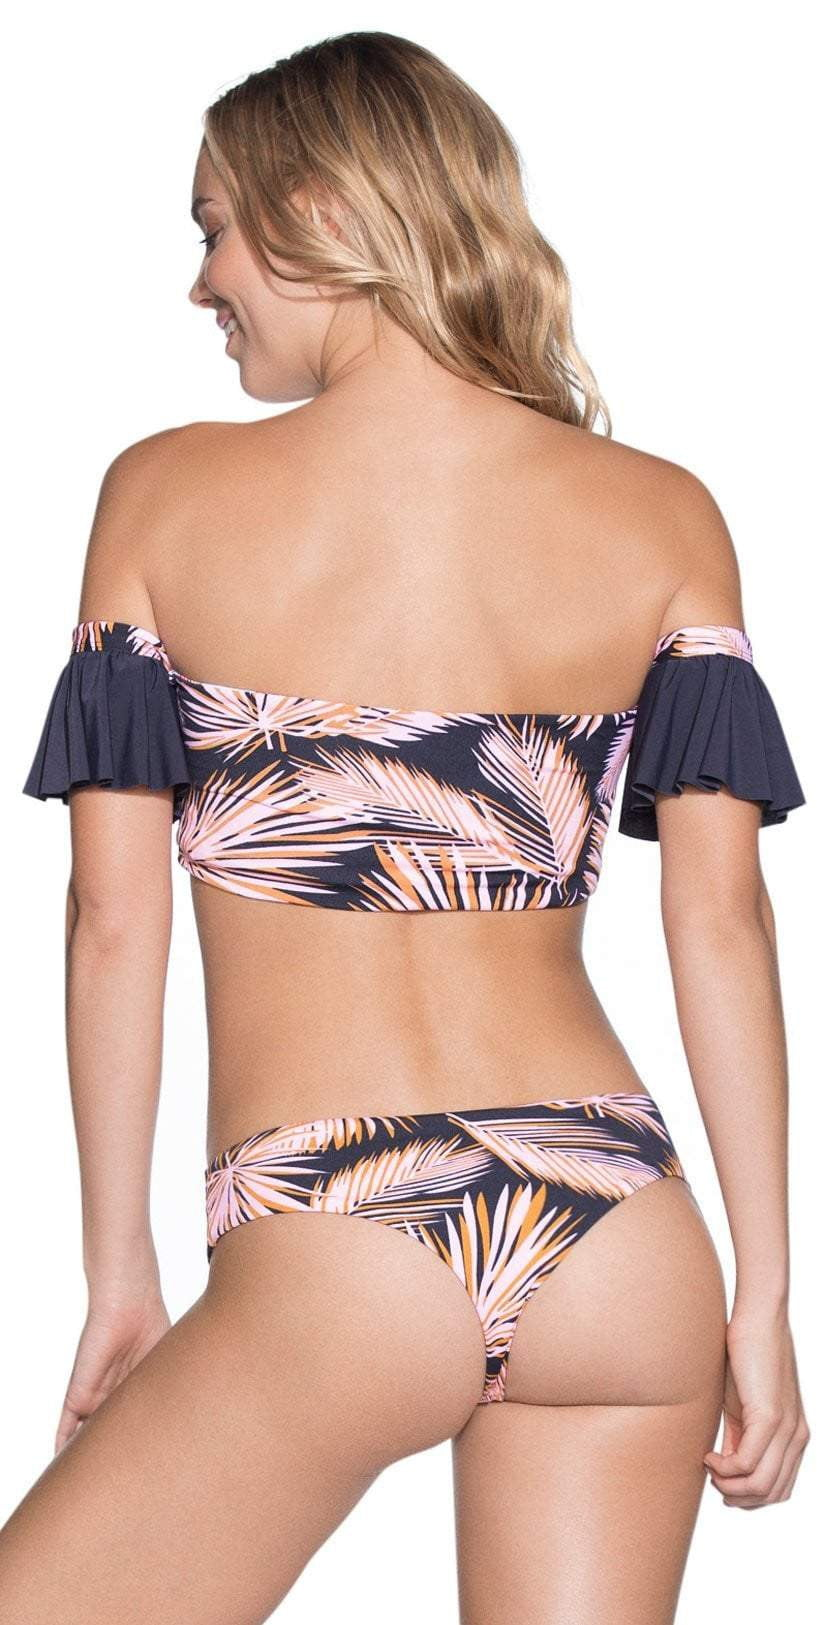 Maaji Columbian Paradise Off the Shoulder Top 2133SFA01: